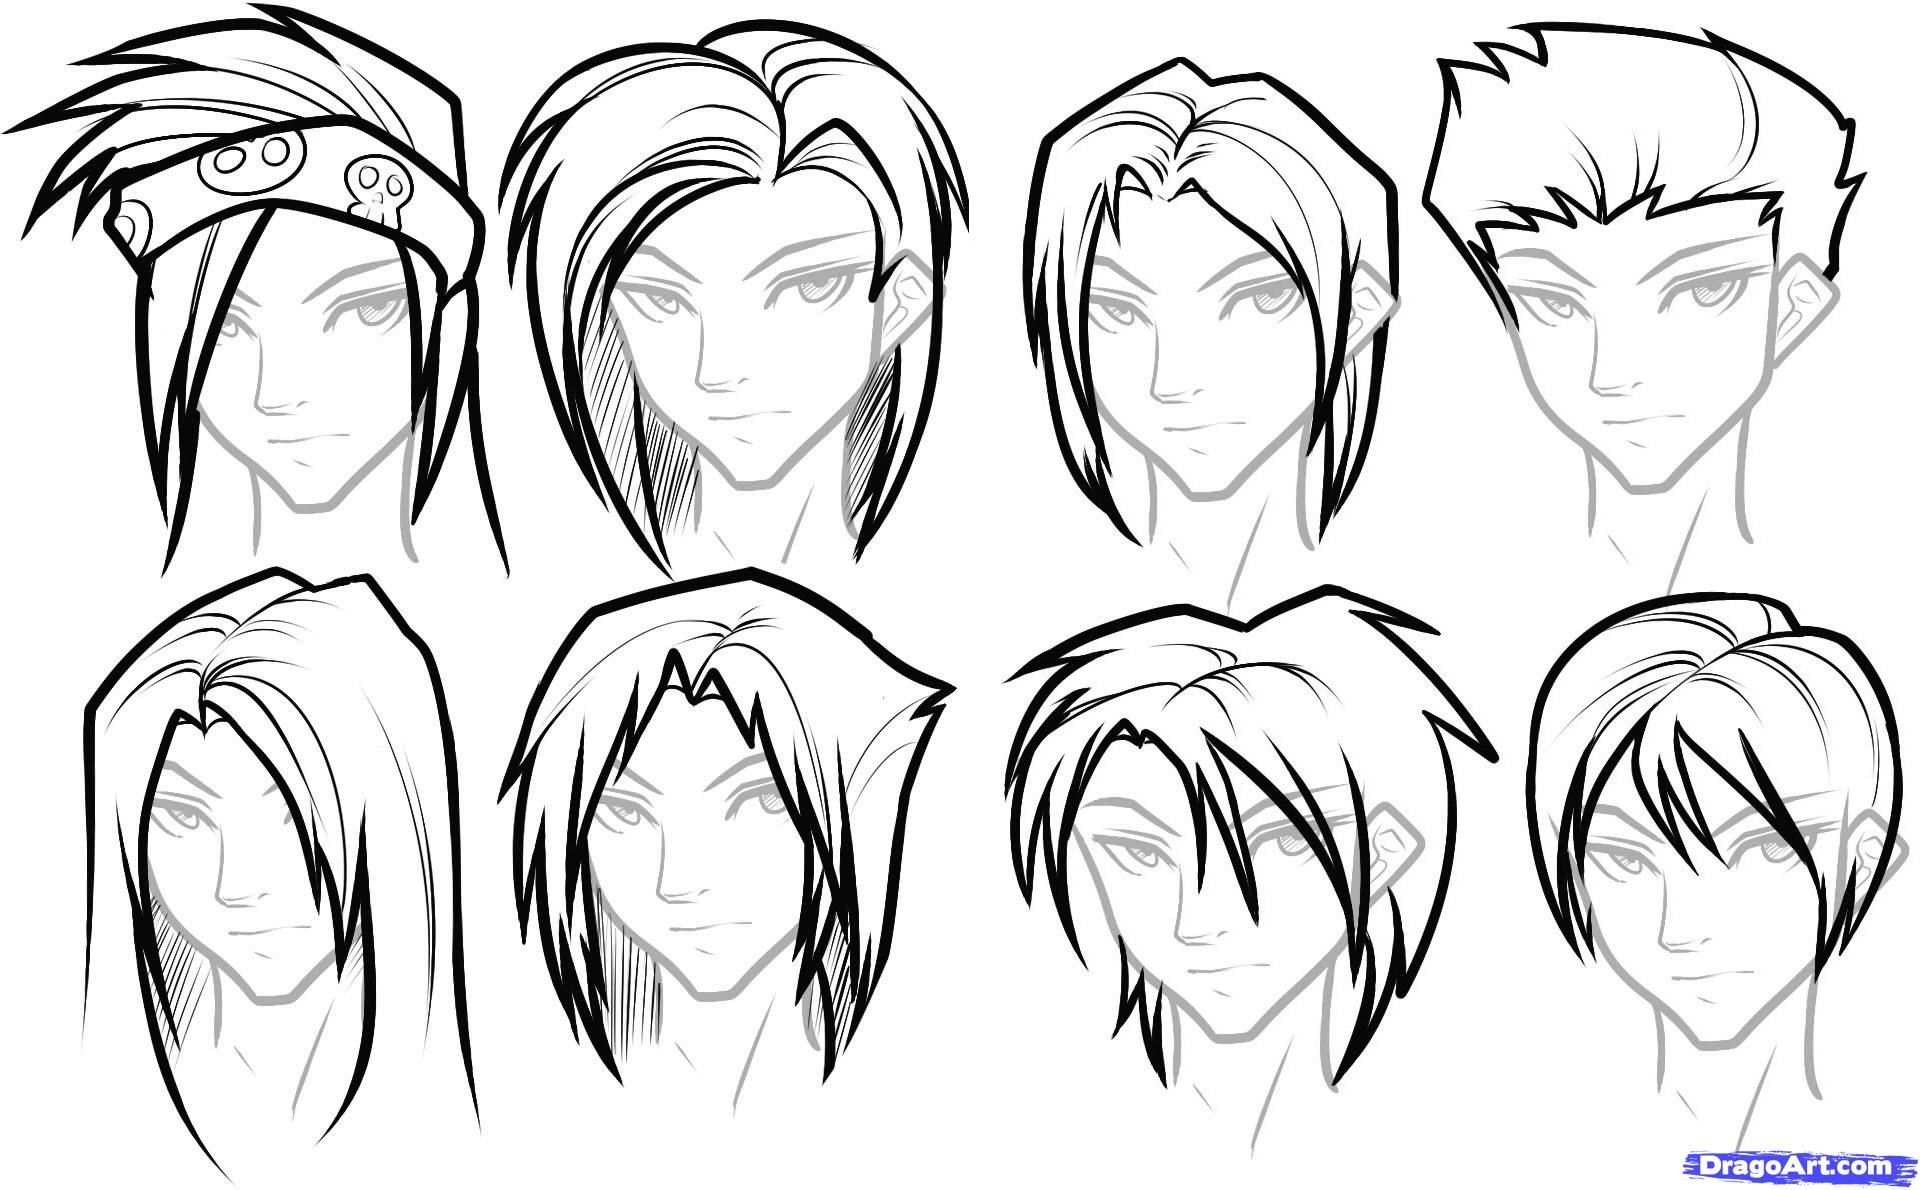 how to draw anime boys anime boy drawing hair drawing art ideas draw anime to boys how